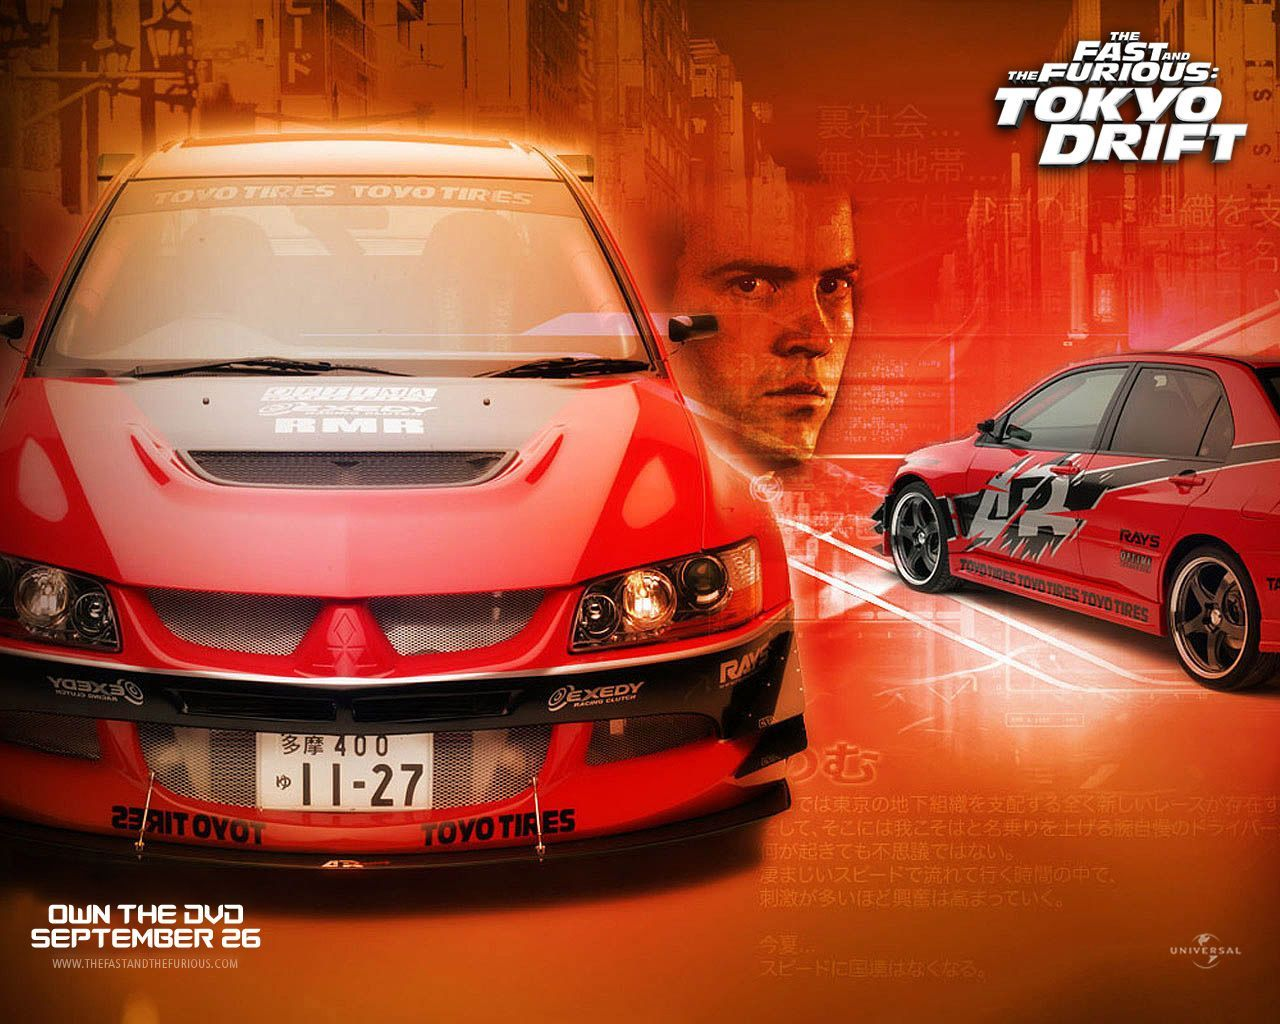 Fast And Furious Tokyo Drift Wallpapers Top Free Fast And Furious Tokyo Drift Backgrounds Wallpaperaccess